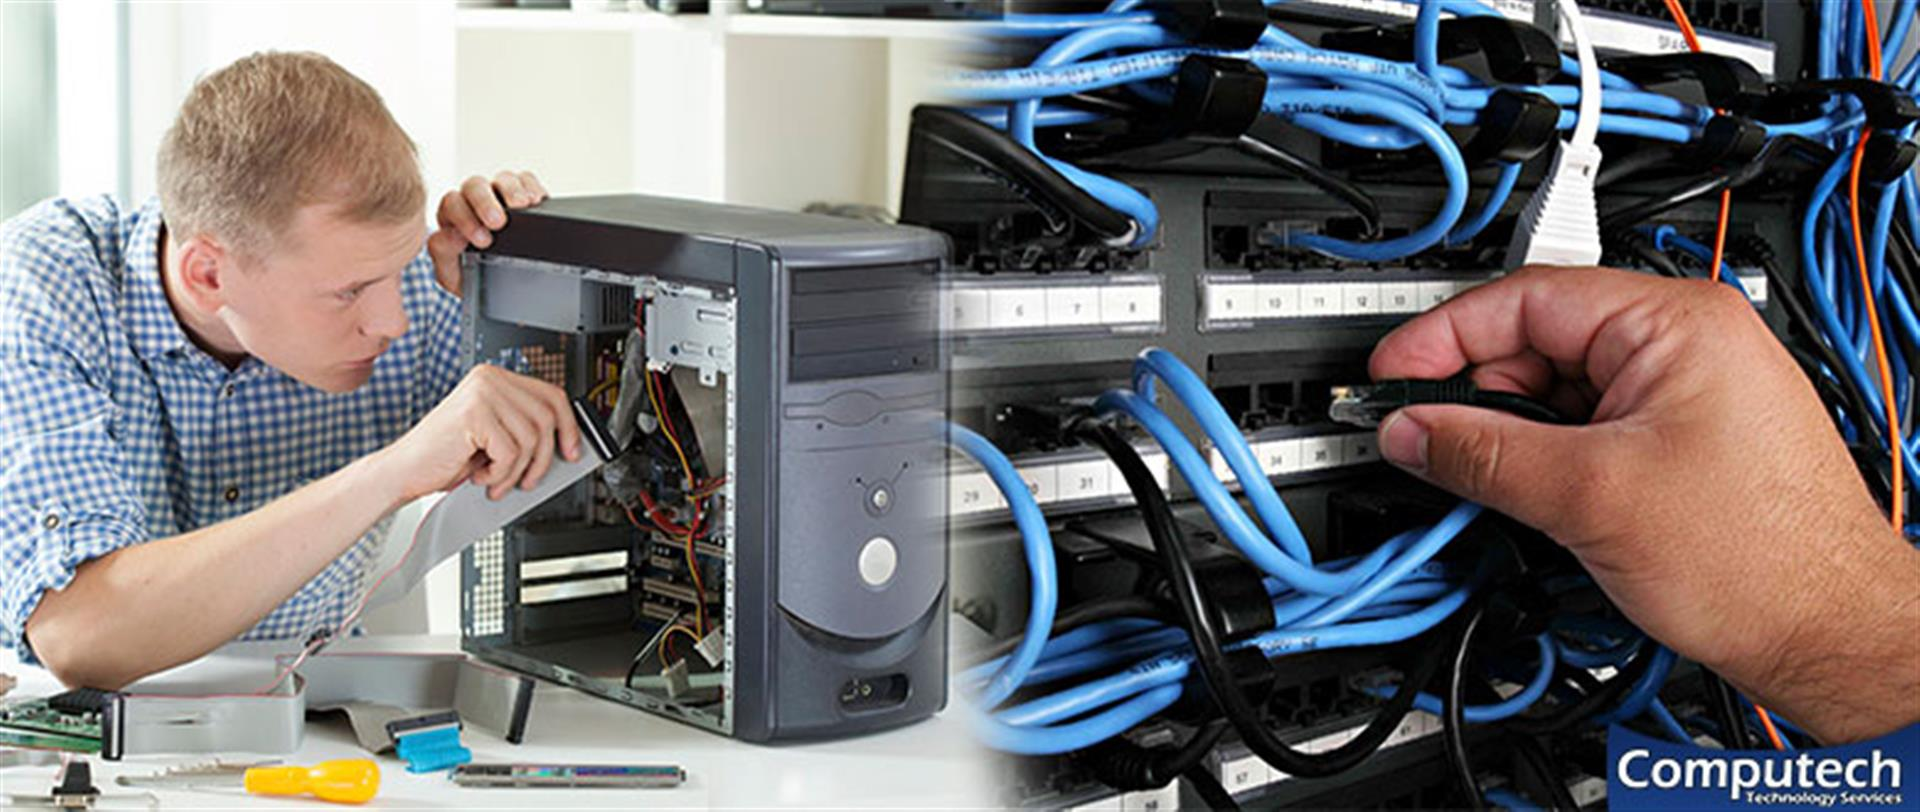 Euharlee Georgia Onsite PC & Printer Repair, Network, Voice & Data Cabling Contractors